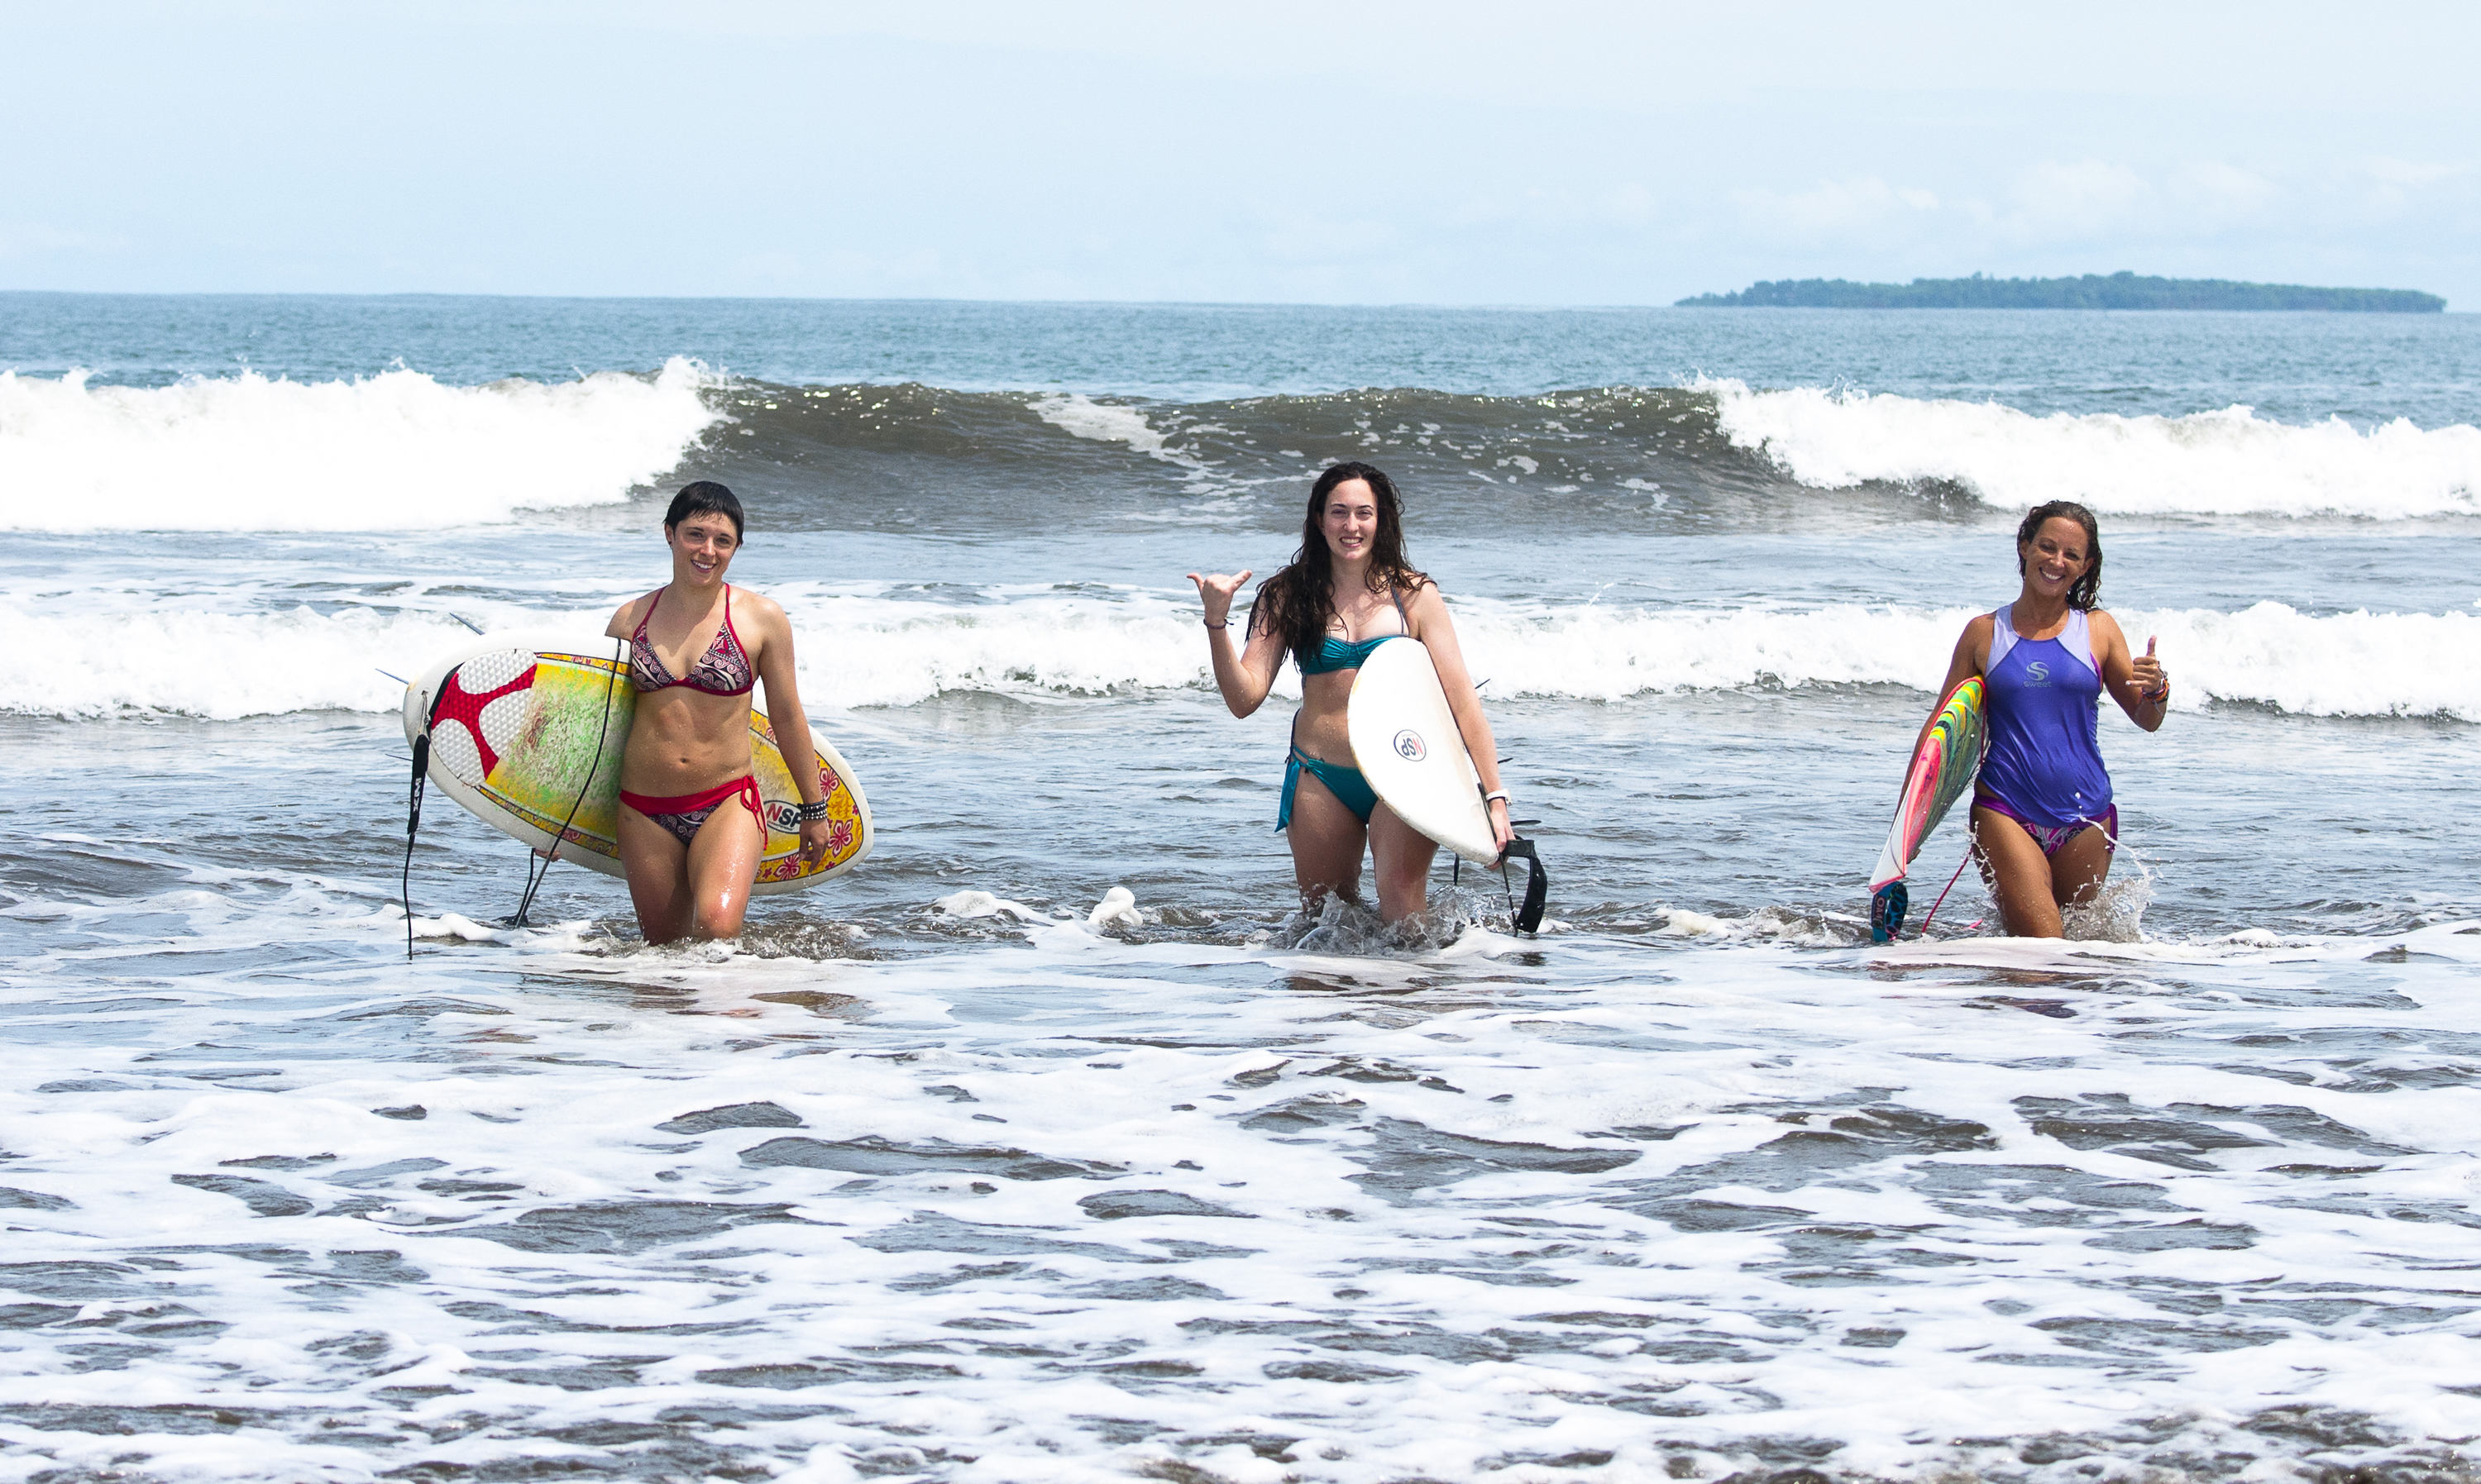 Make new surf sisters for life